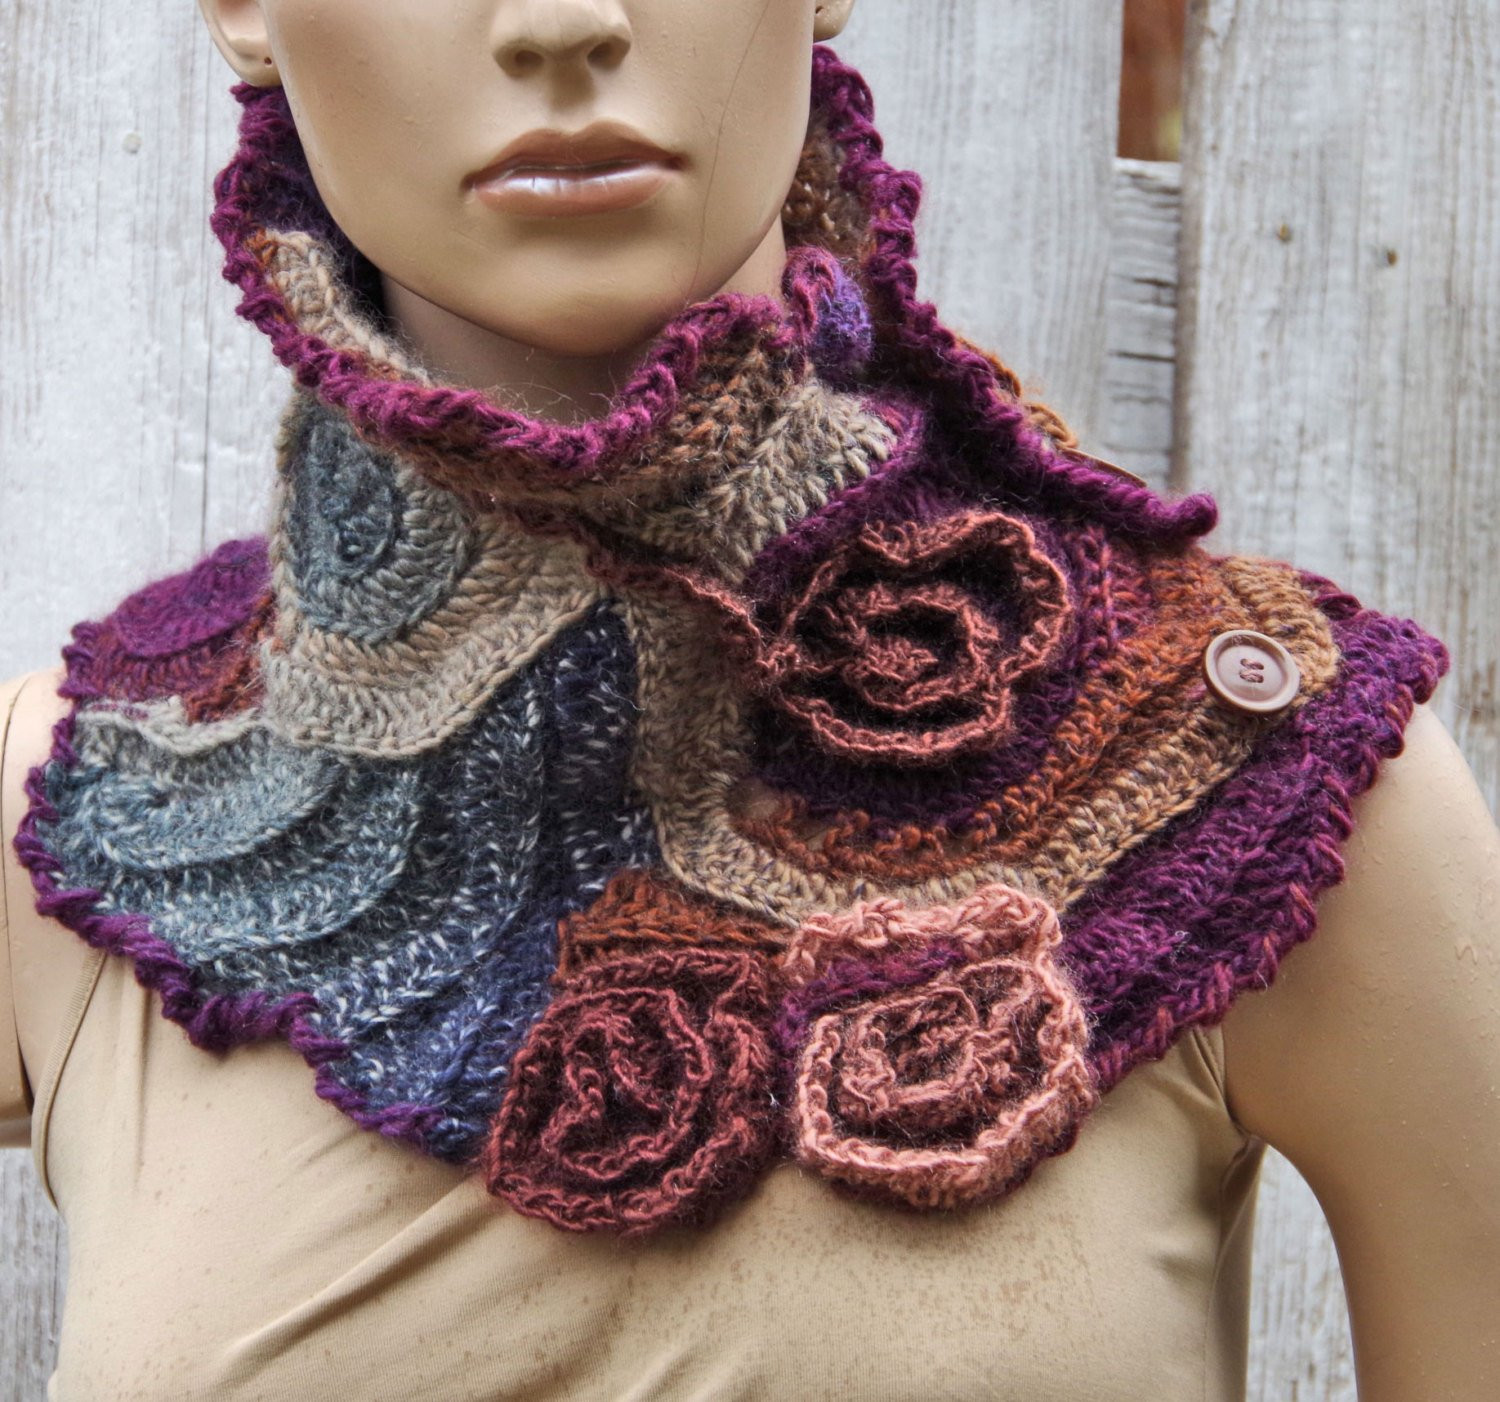 Crochet Neck Scarf Elegant Crochet Scarf Capelet Neck Warmer Freeform by Degra2 Of Great 50 Ideas Crochet Neck Scarf